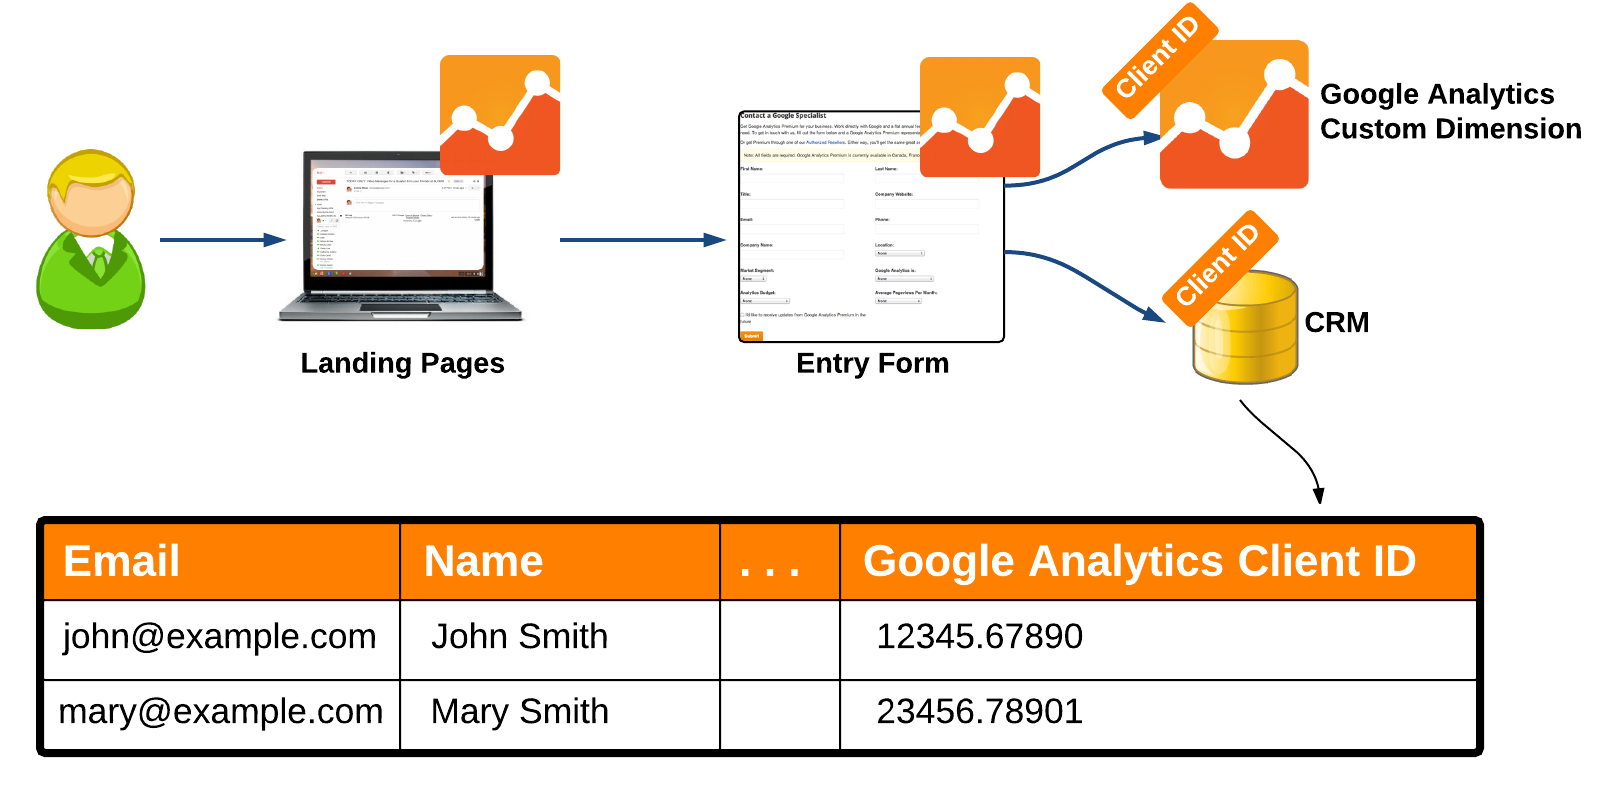 Link Client ID in CRM and Analytics